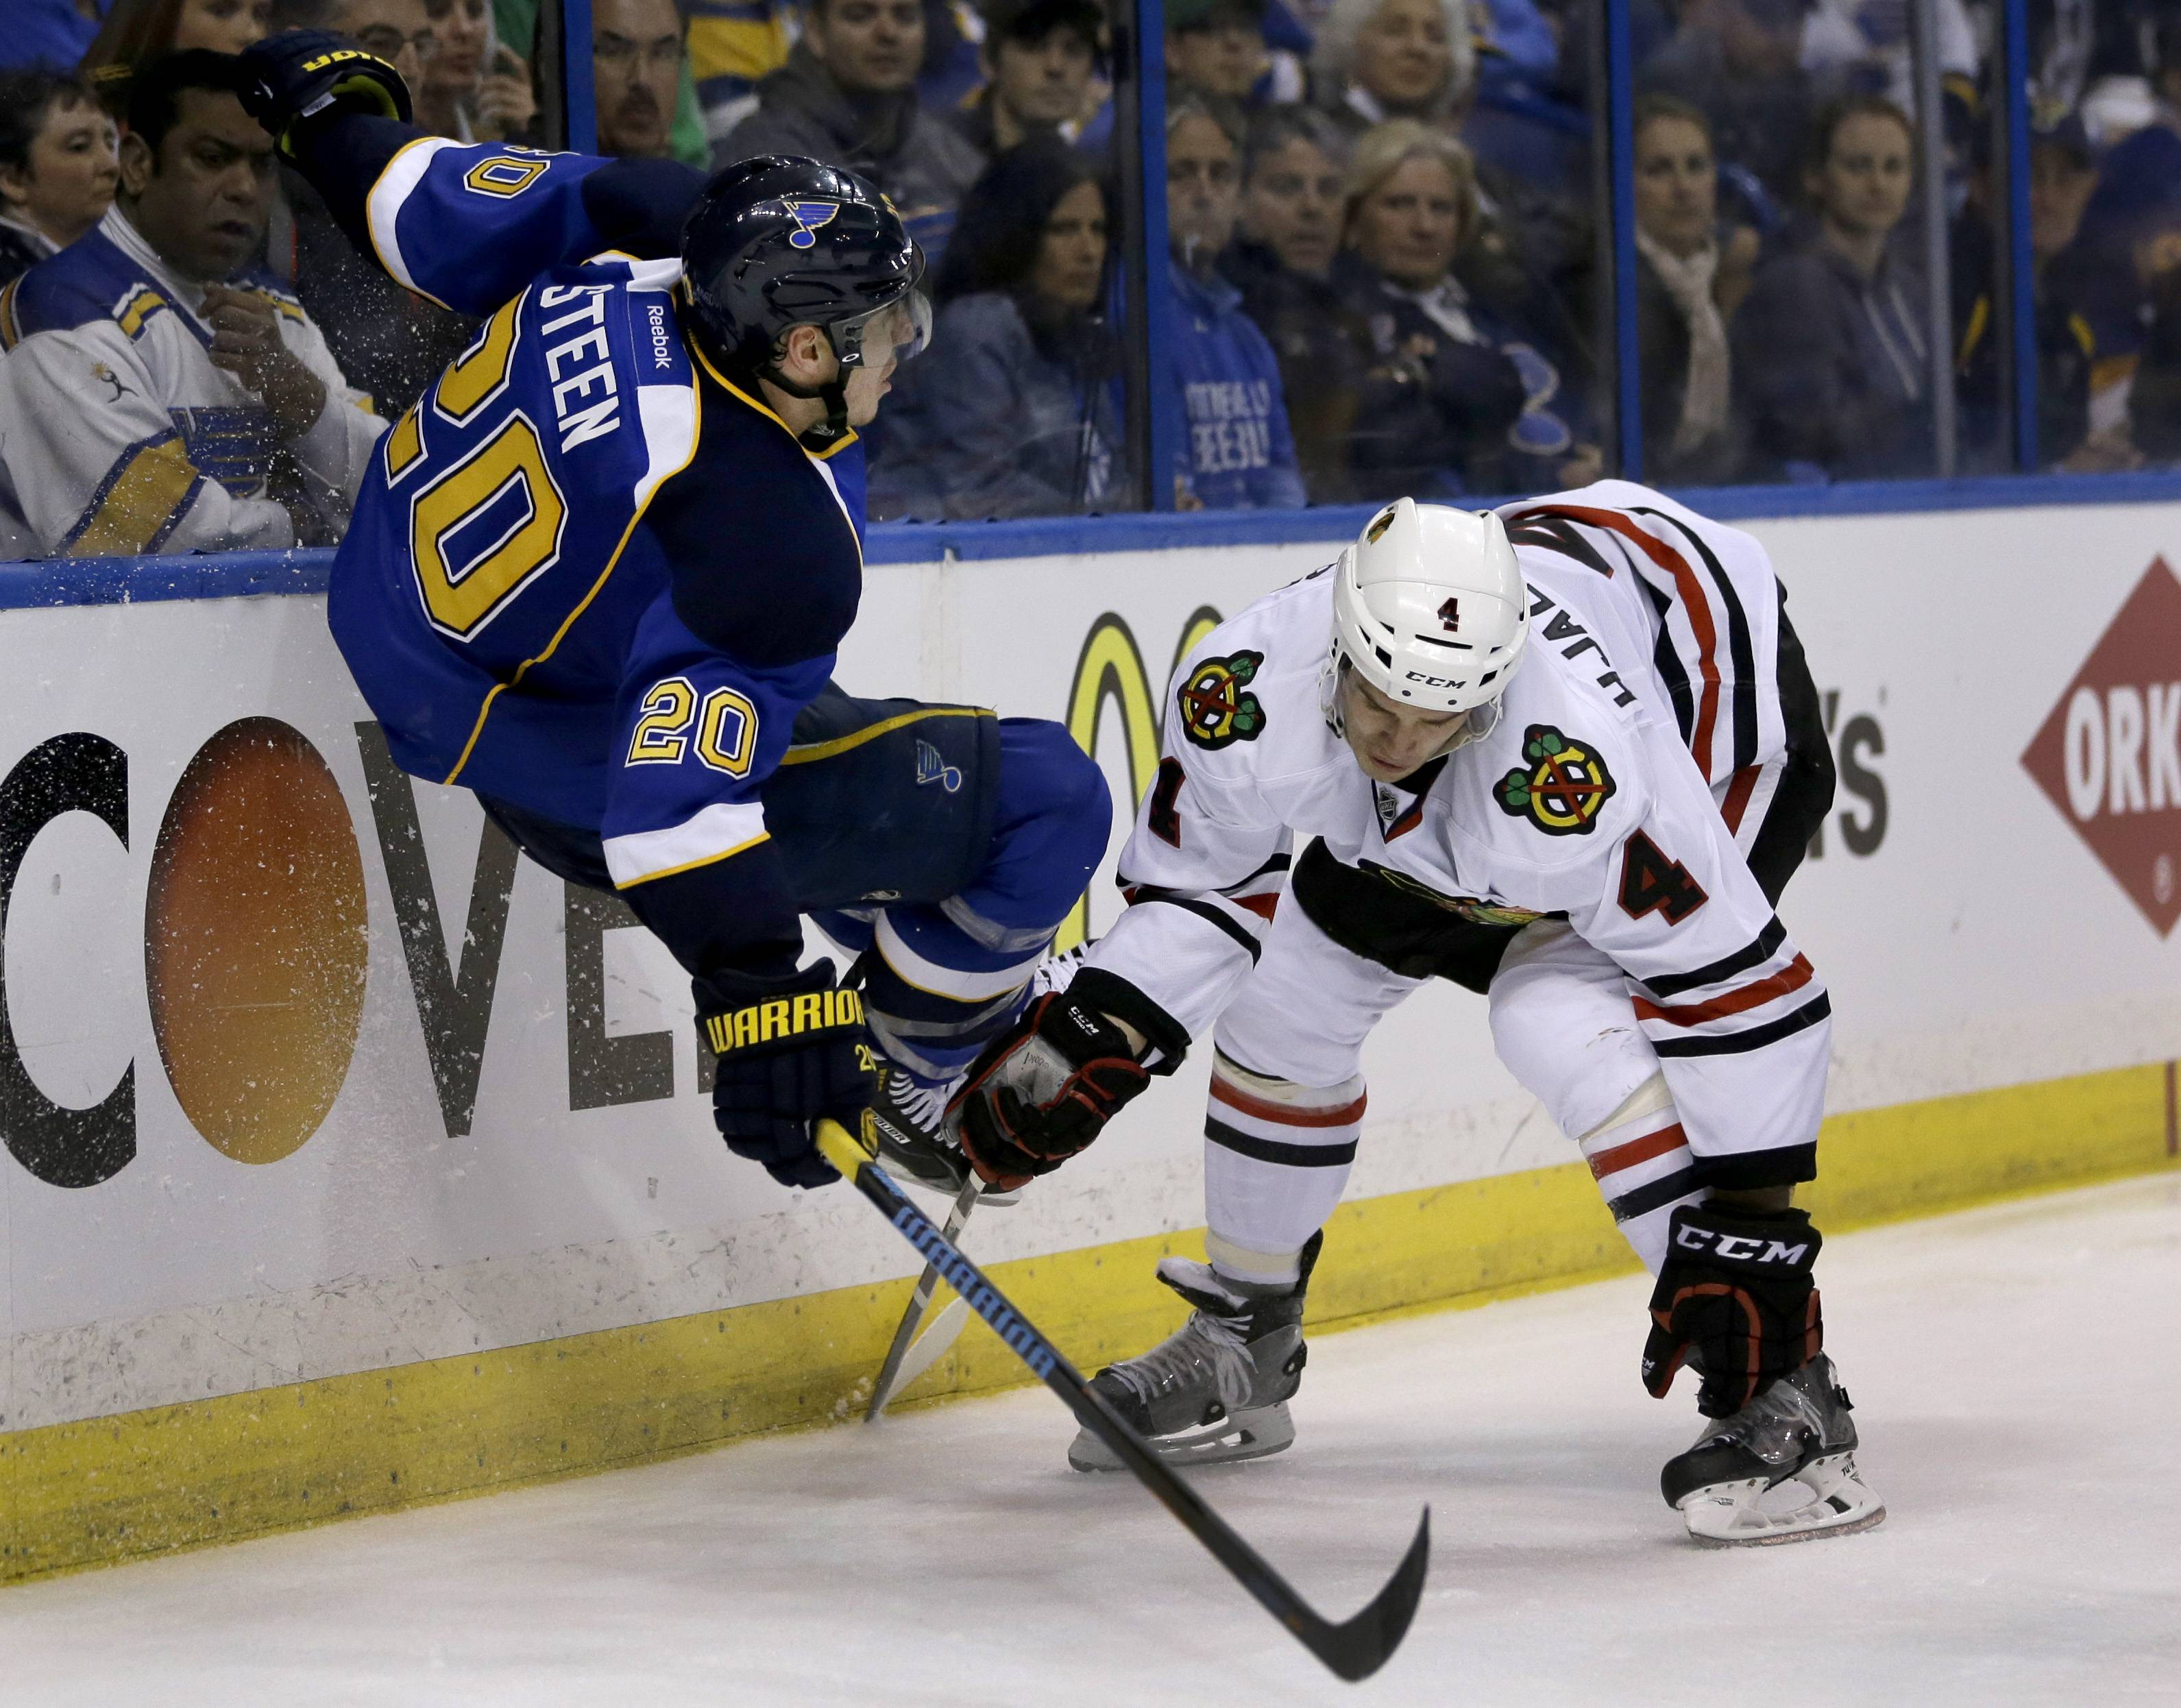 Niklas Hjalmarsson, here delivering a check to the Blues' Alexander Steen during Game 1, has 14 blocked shots in the first three games of the series against St. Louis, second in the NHL.